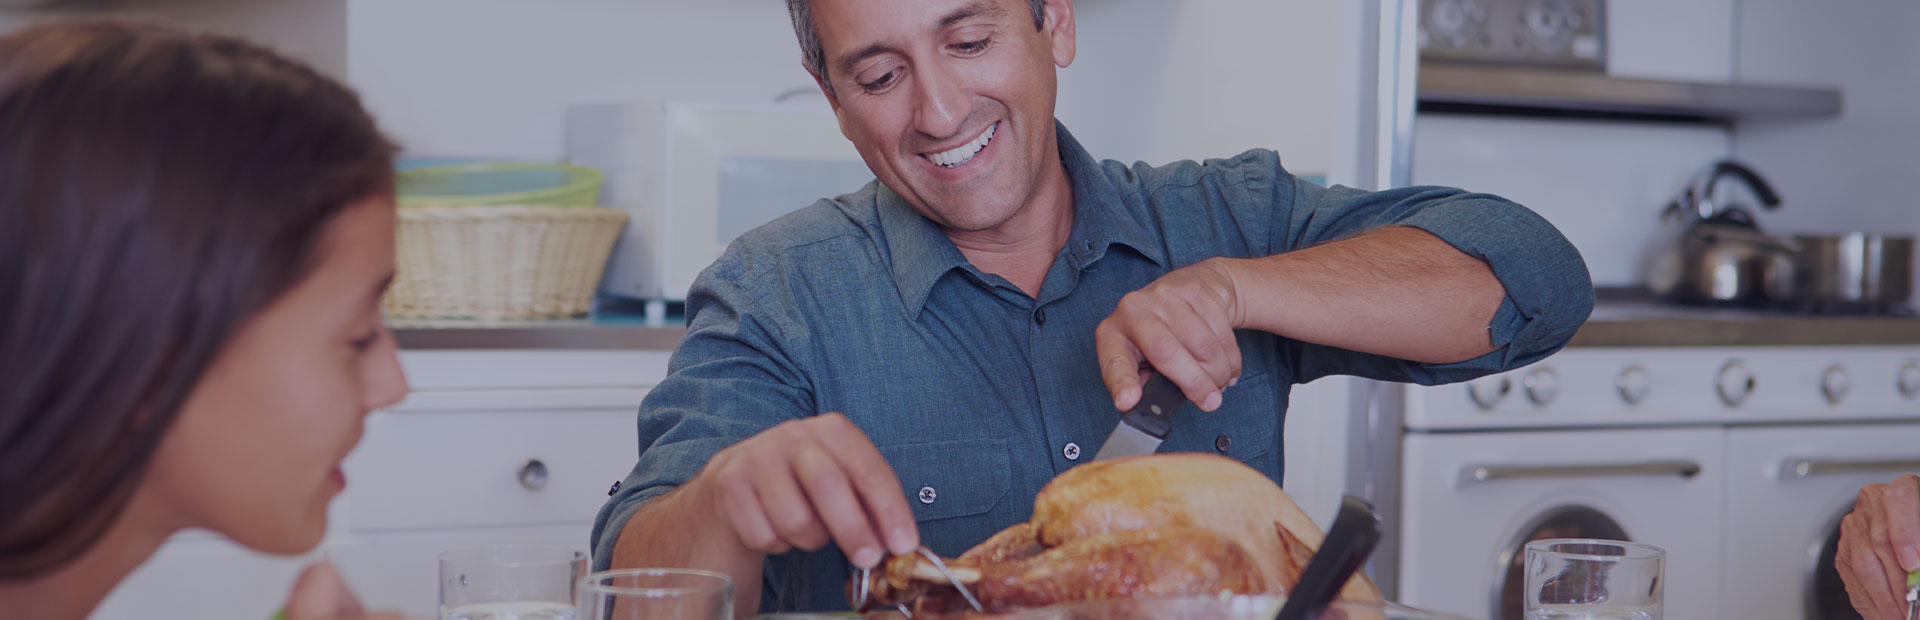 A man in his fifties is carving into a roast chicken, he is smiling because he knows he won't have any issues eating with dentures thanks to Fixodent's tips.